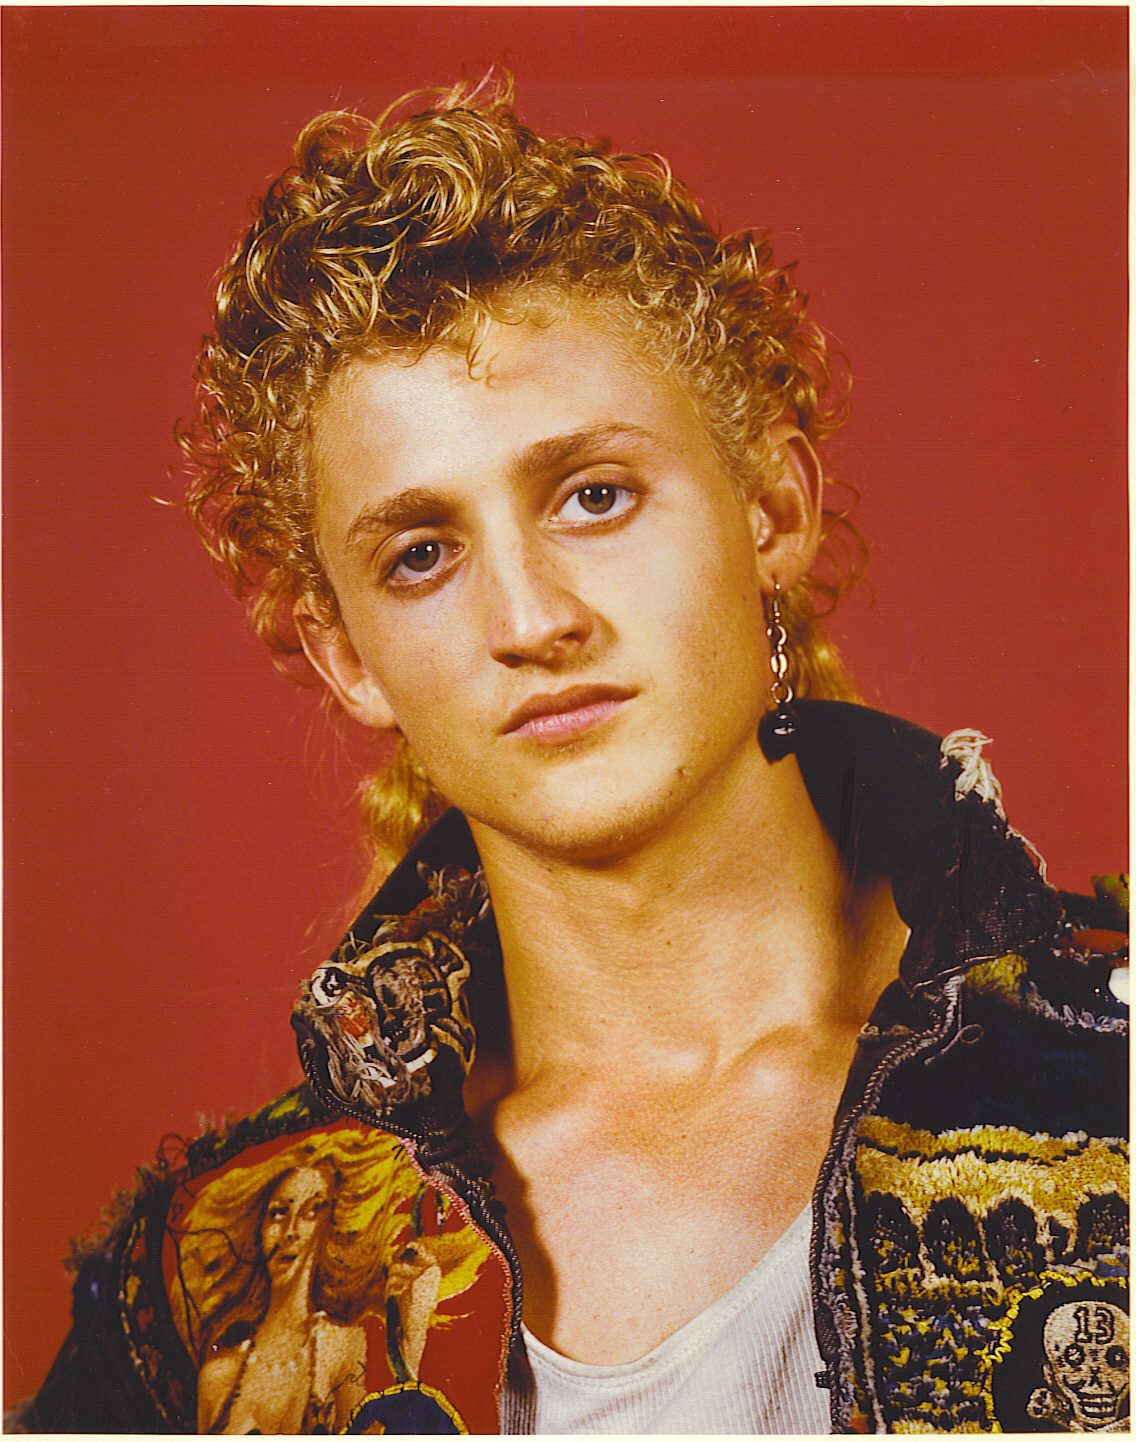 alex winter joe roganalex winter and keanu reeves, alex winter instagram, alex winter imdb, alex winter ted talk, alex winter interview, alex winter, alex winter net worth, alex winter wiki, alex winter documentary, alex winter twitter, alex winter facebook, alex winter joe rogan, alex winter fete, alex winter modern family, alex wynter colchester, alex winter 2015, alex winter cbeebies, alex winter zappa, alex winter dead, alex winter height